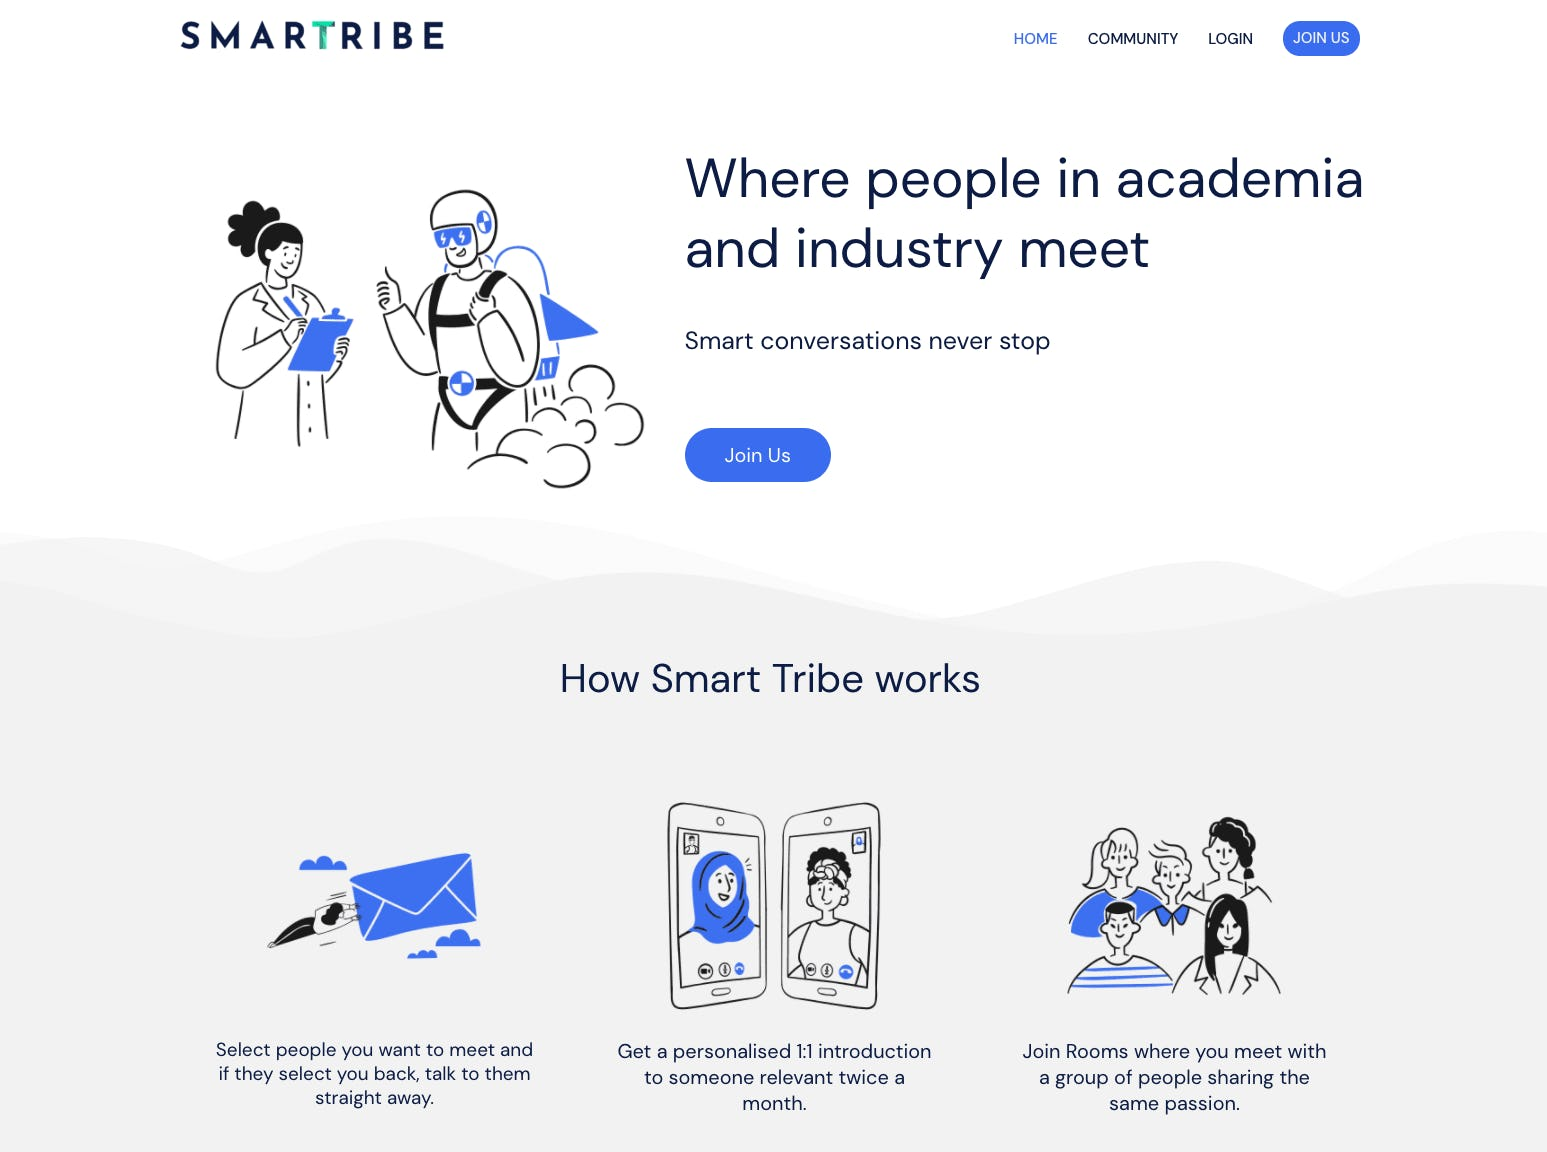 Screenshot of the service marketplace SmartTribe's landing page featuring cartoons in blue and black.